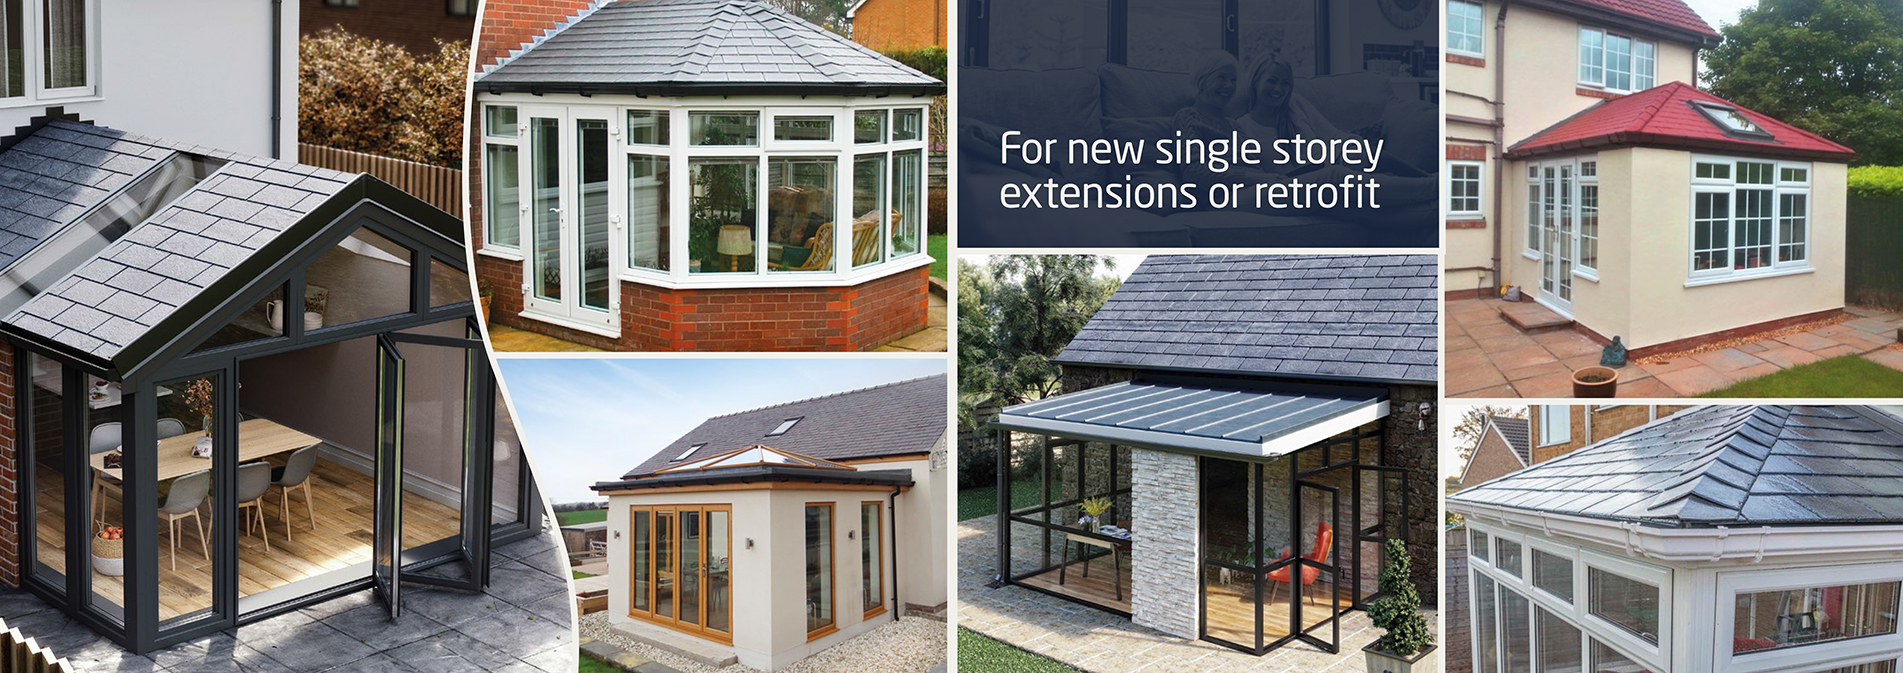 Single story roof extensions